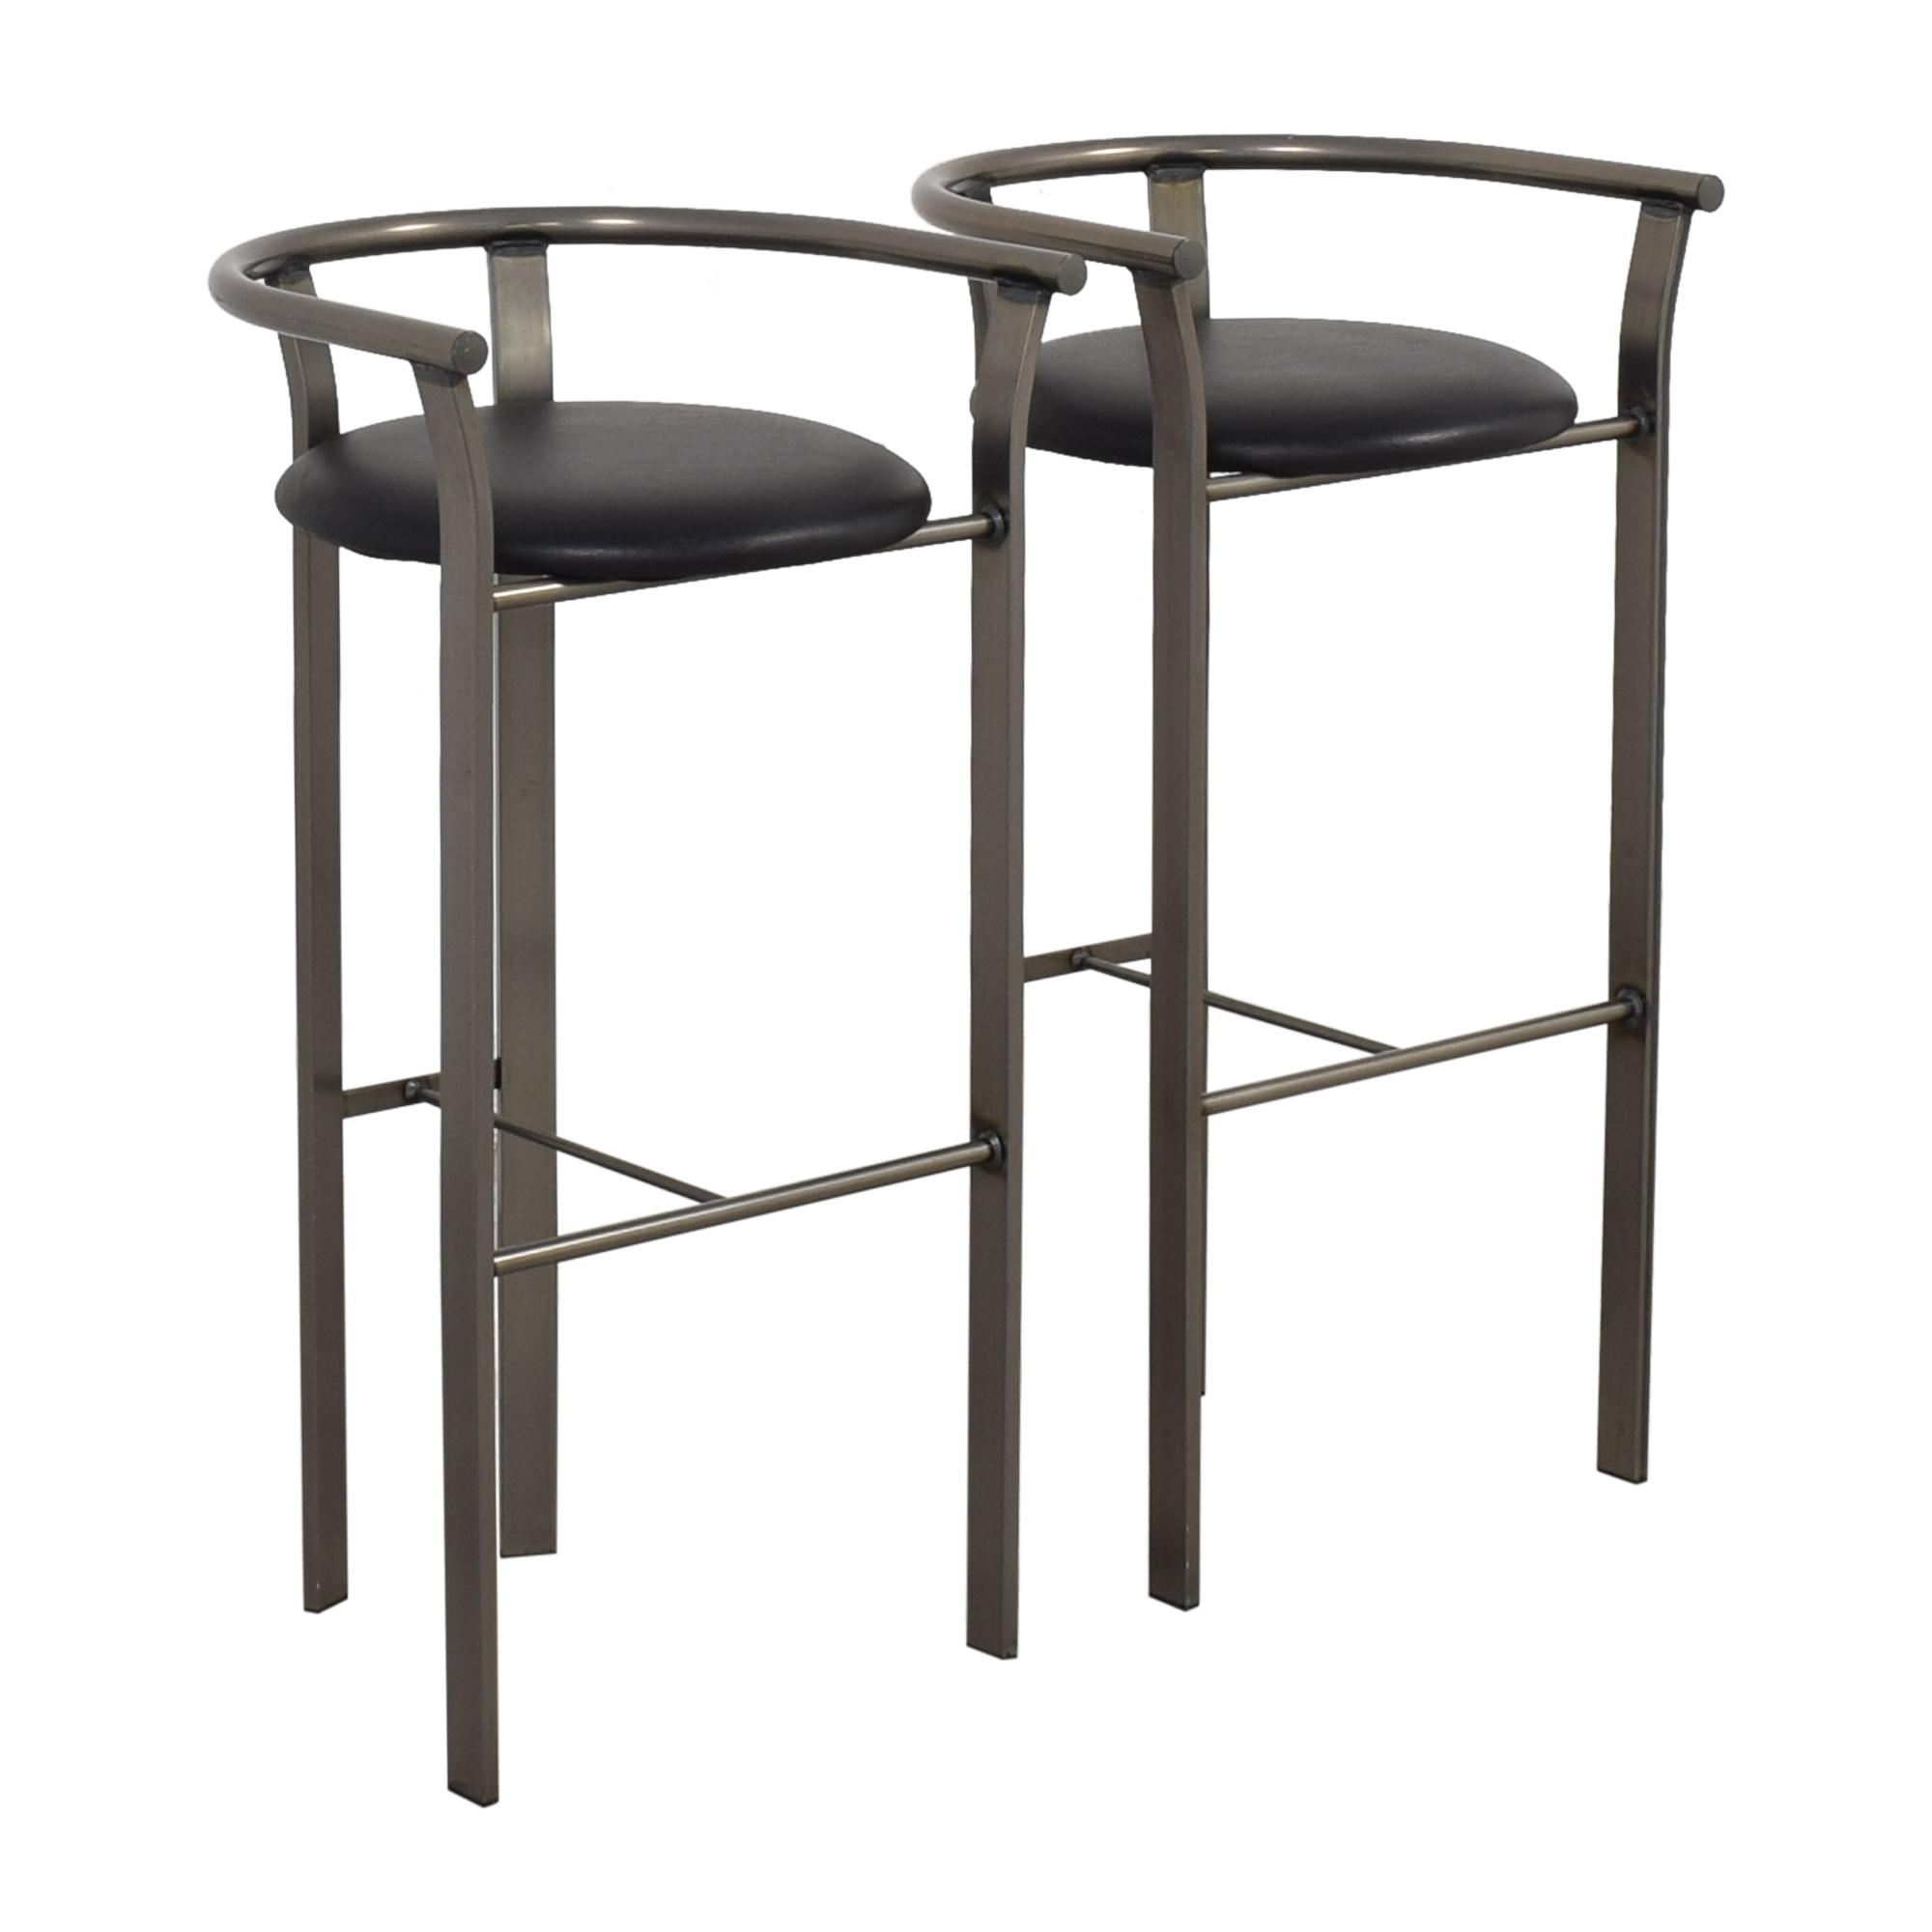 Amisco Amisco Retro Metal & Leather Bar Stools pa